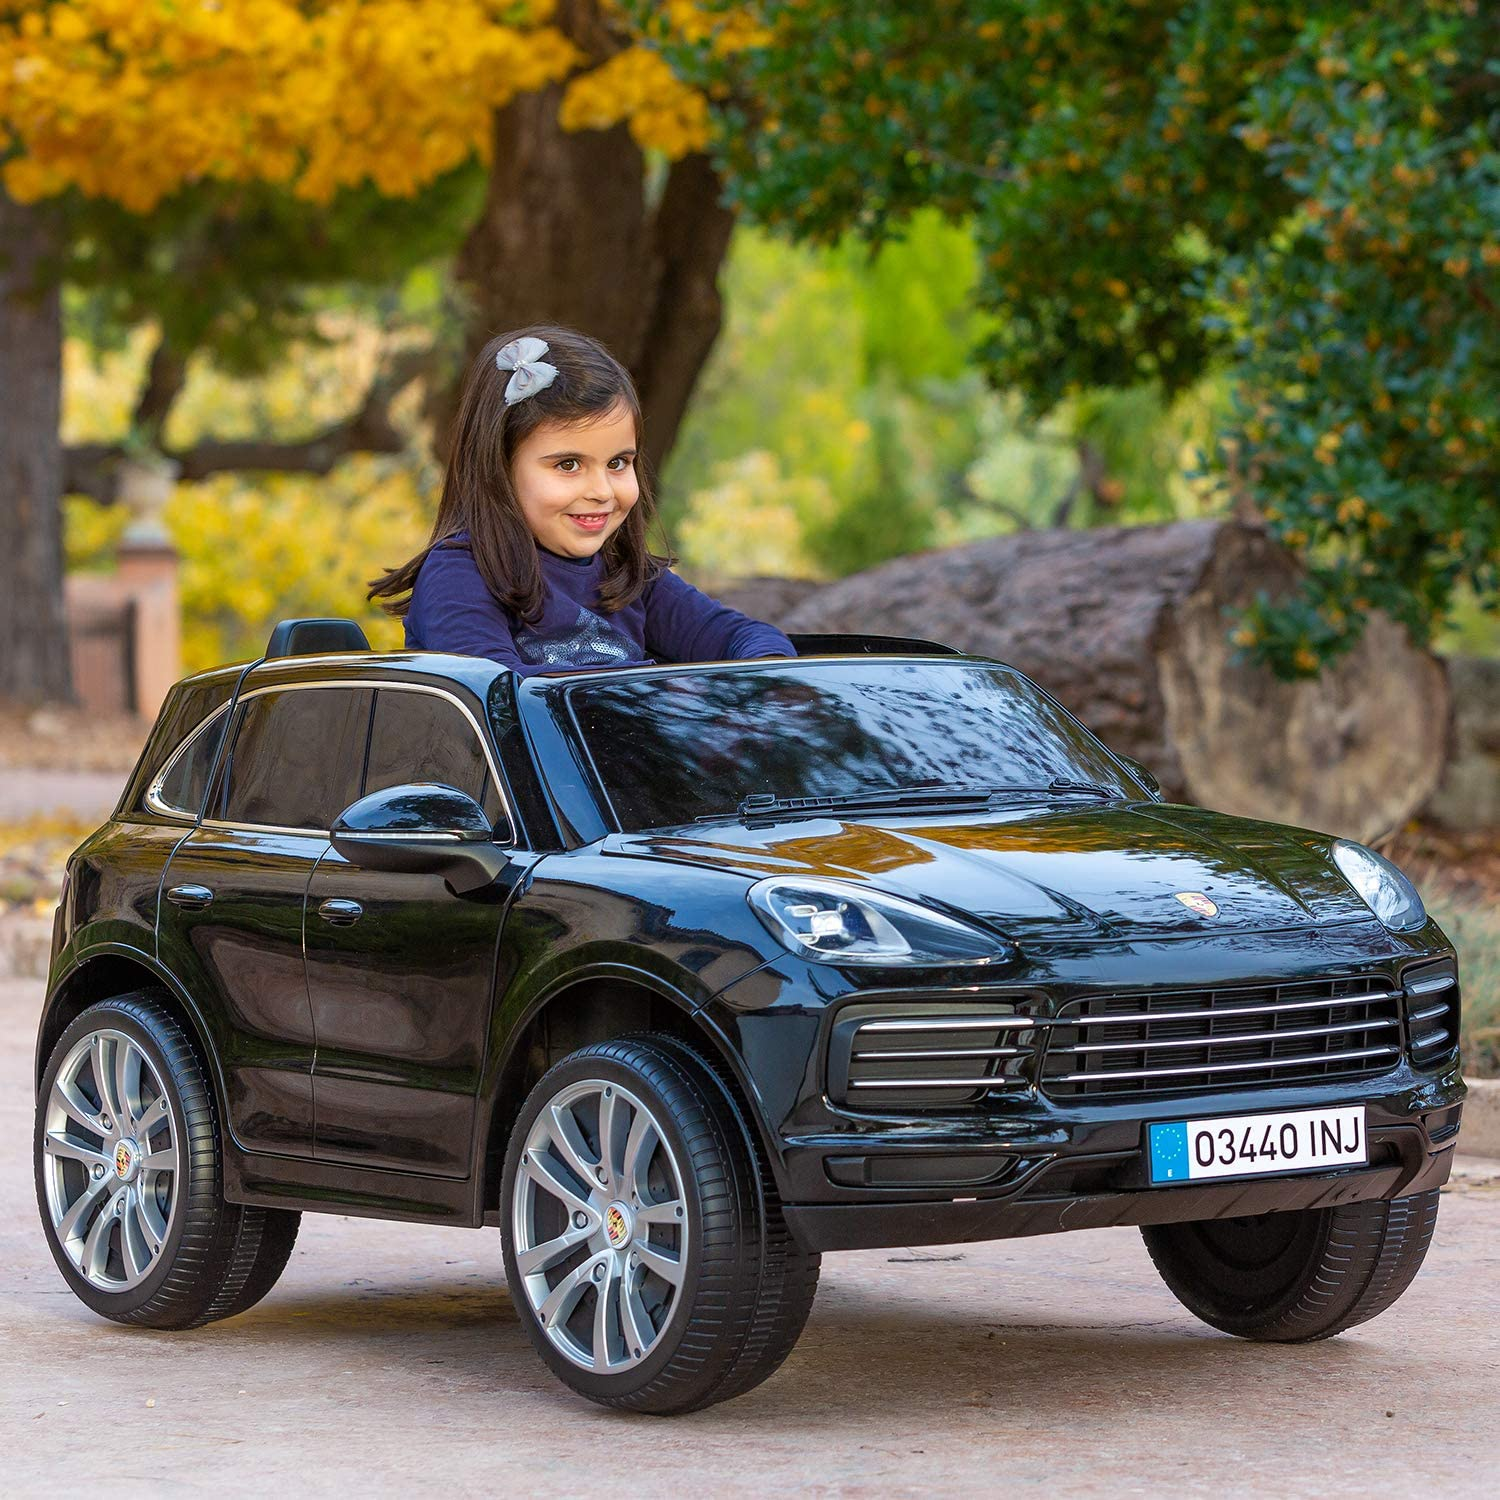 Porsche Cayenne Ride On Car with Remote Control